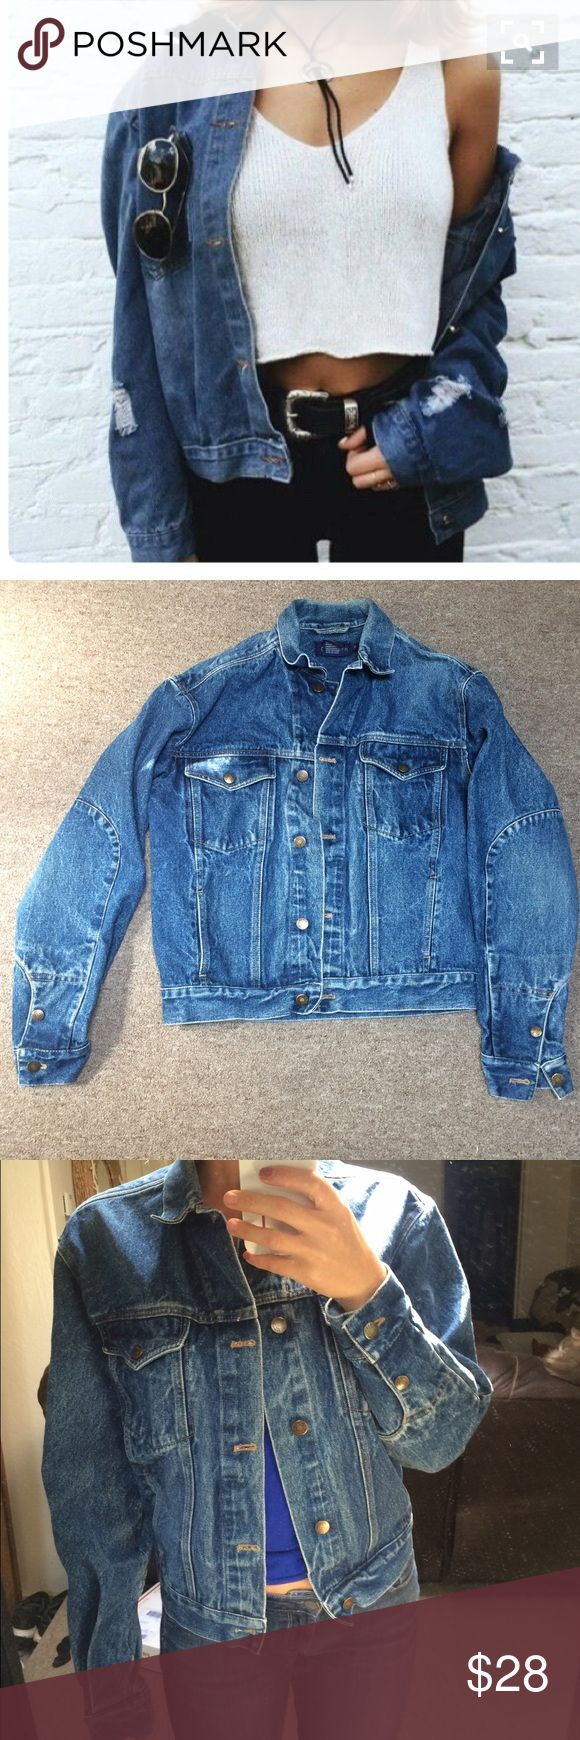 Oversized vintage denim jacket Oversized dark denim jacket. The oversized jean jacket is coming back with the grunge trend this fall/winter. Real nice vintage style jean jacket. Not the same as cover photo. Calvin Klein Jackets & Coats Jean Jackets